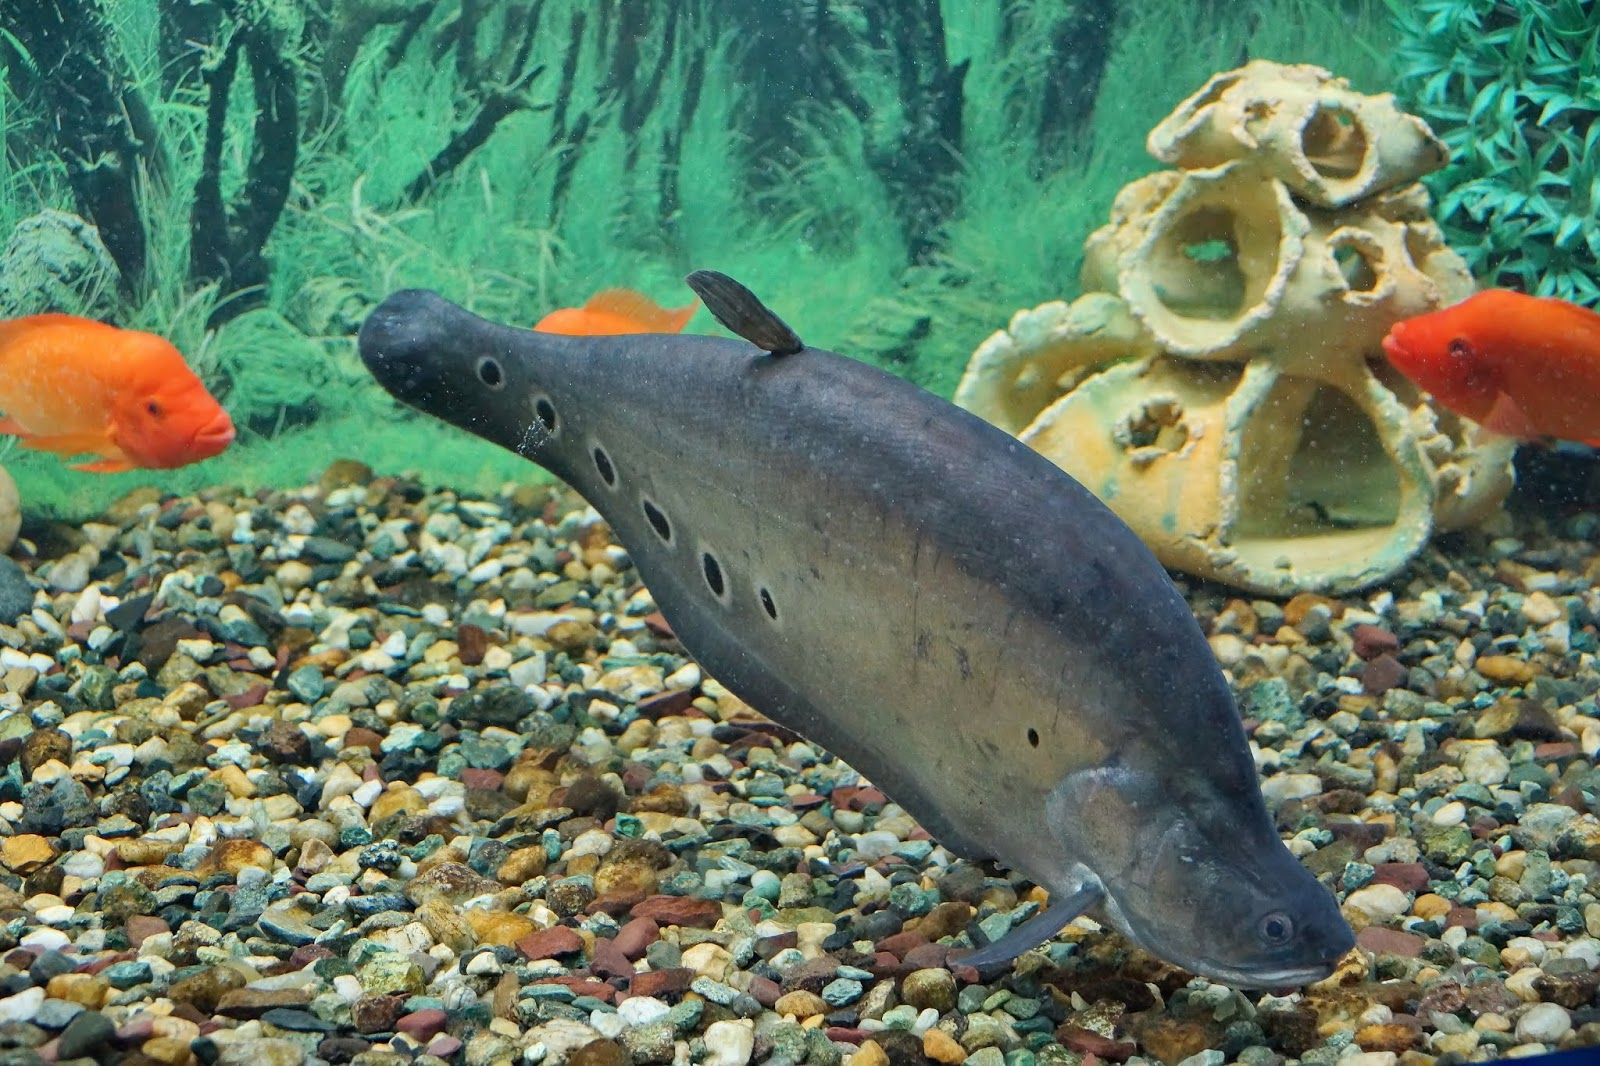 types of knife fish, knife fish, knife fish types